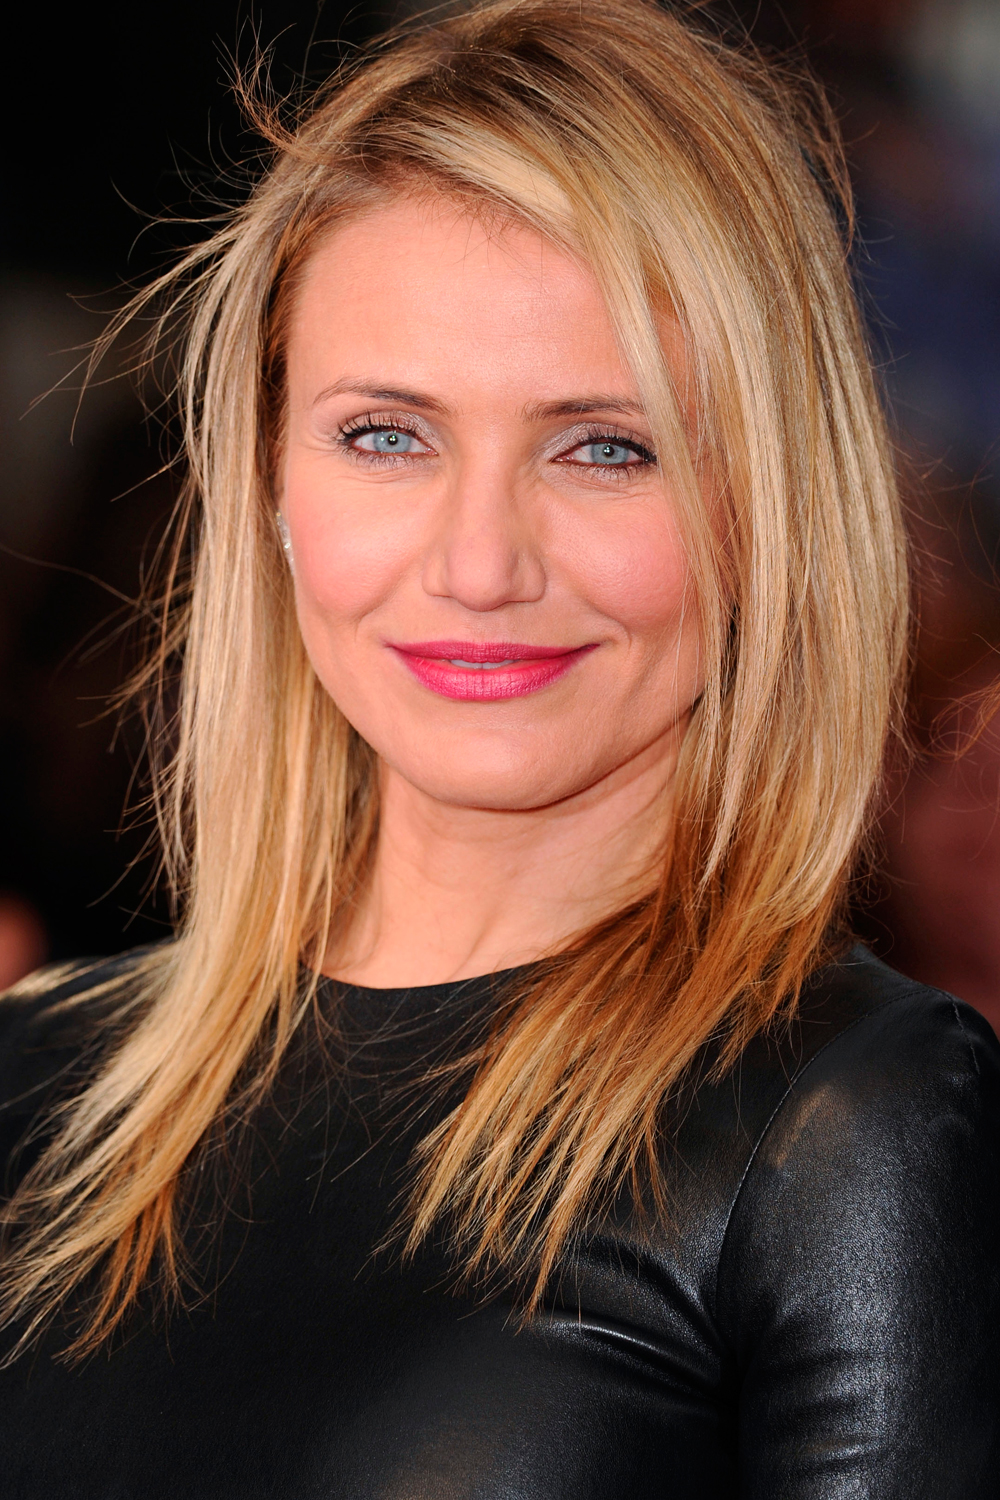 How To Be As Sorted As Cameron DiazCameron Diaz